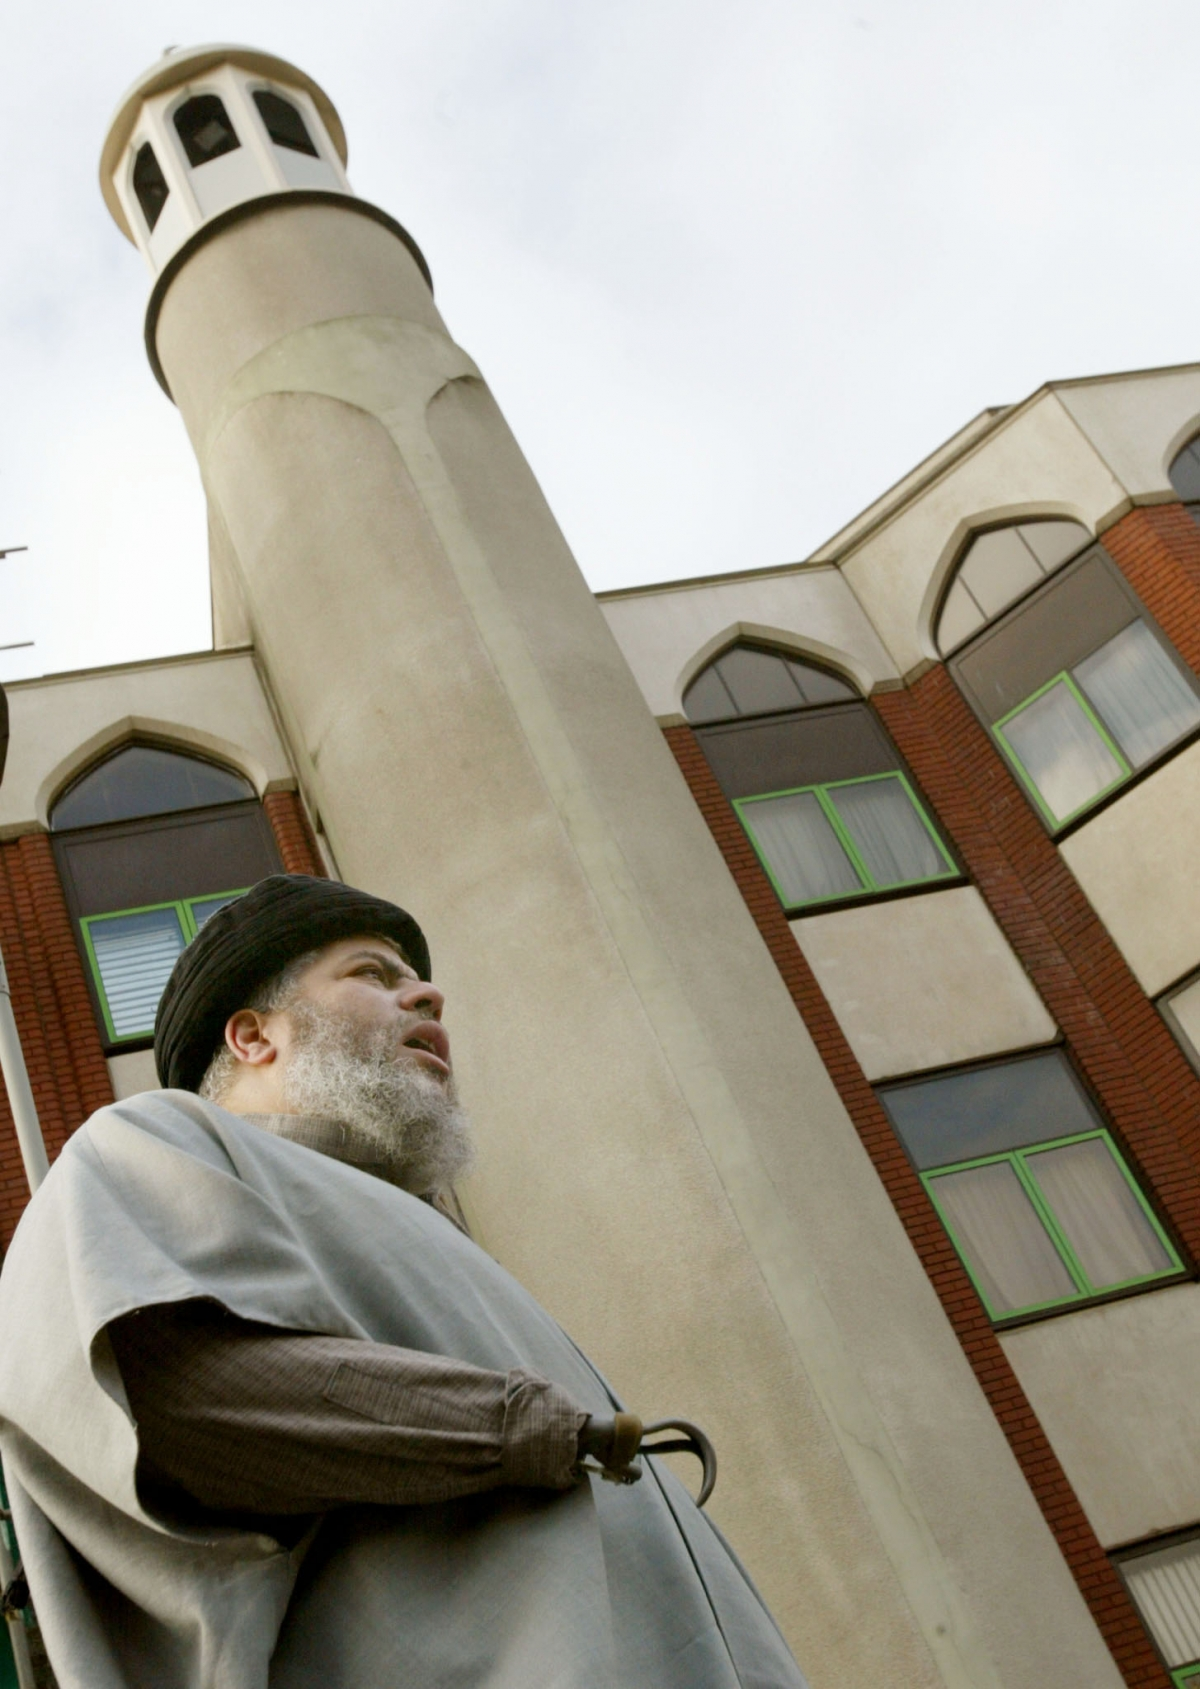 Muslim cleric,Abu Hamza al-Masri, leads prayers outside the N